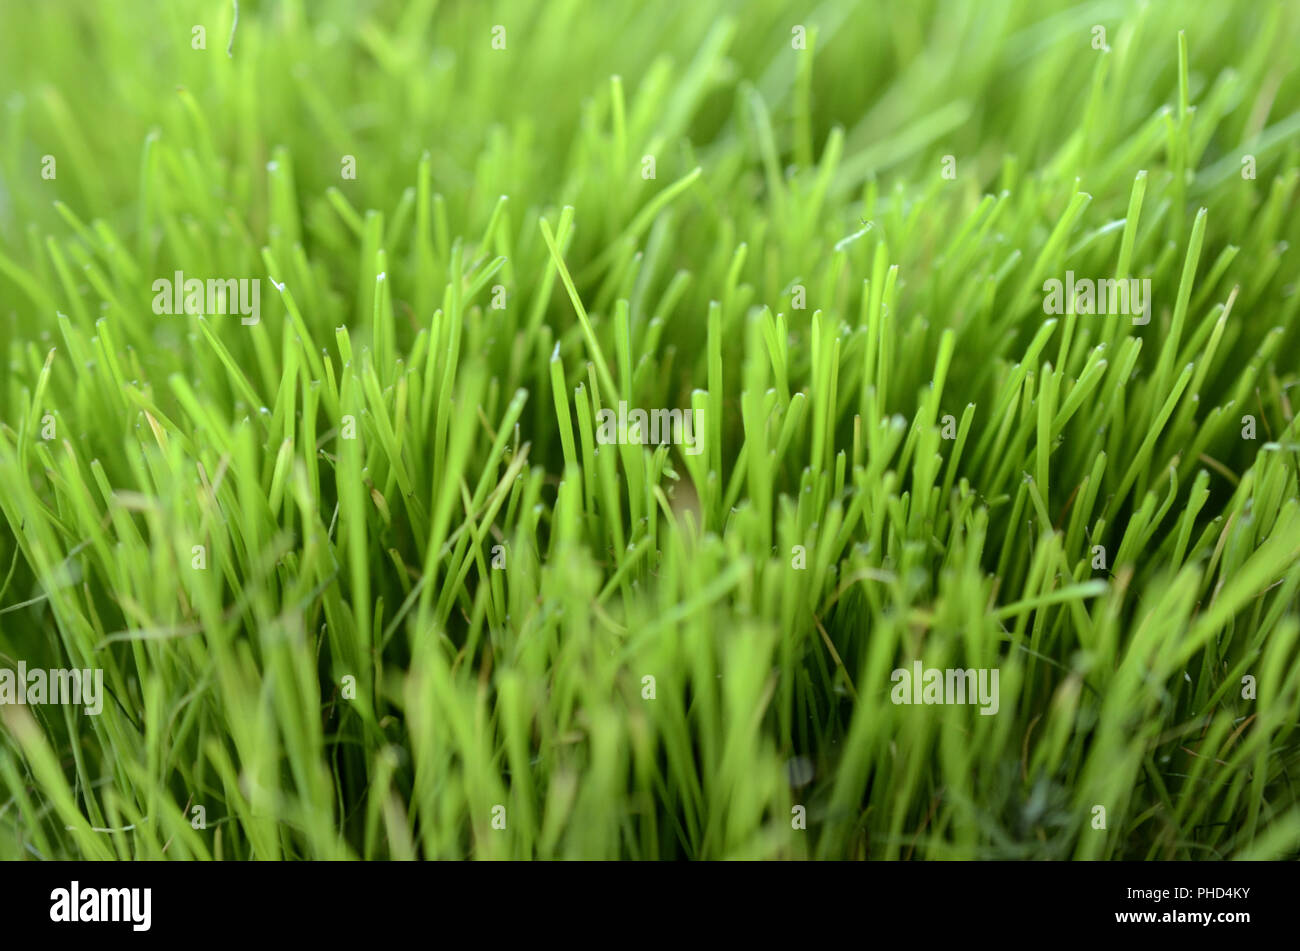 close-up of lush green grass - Stock Image